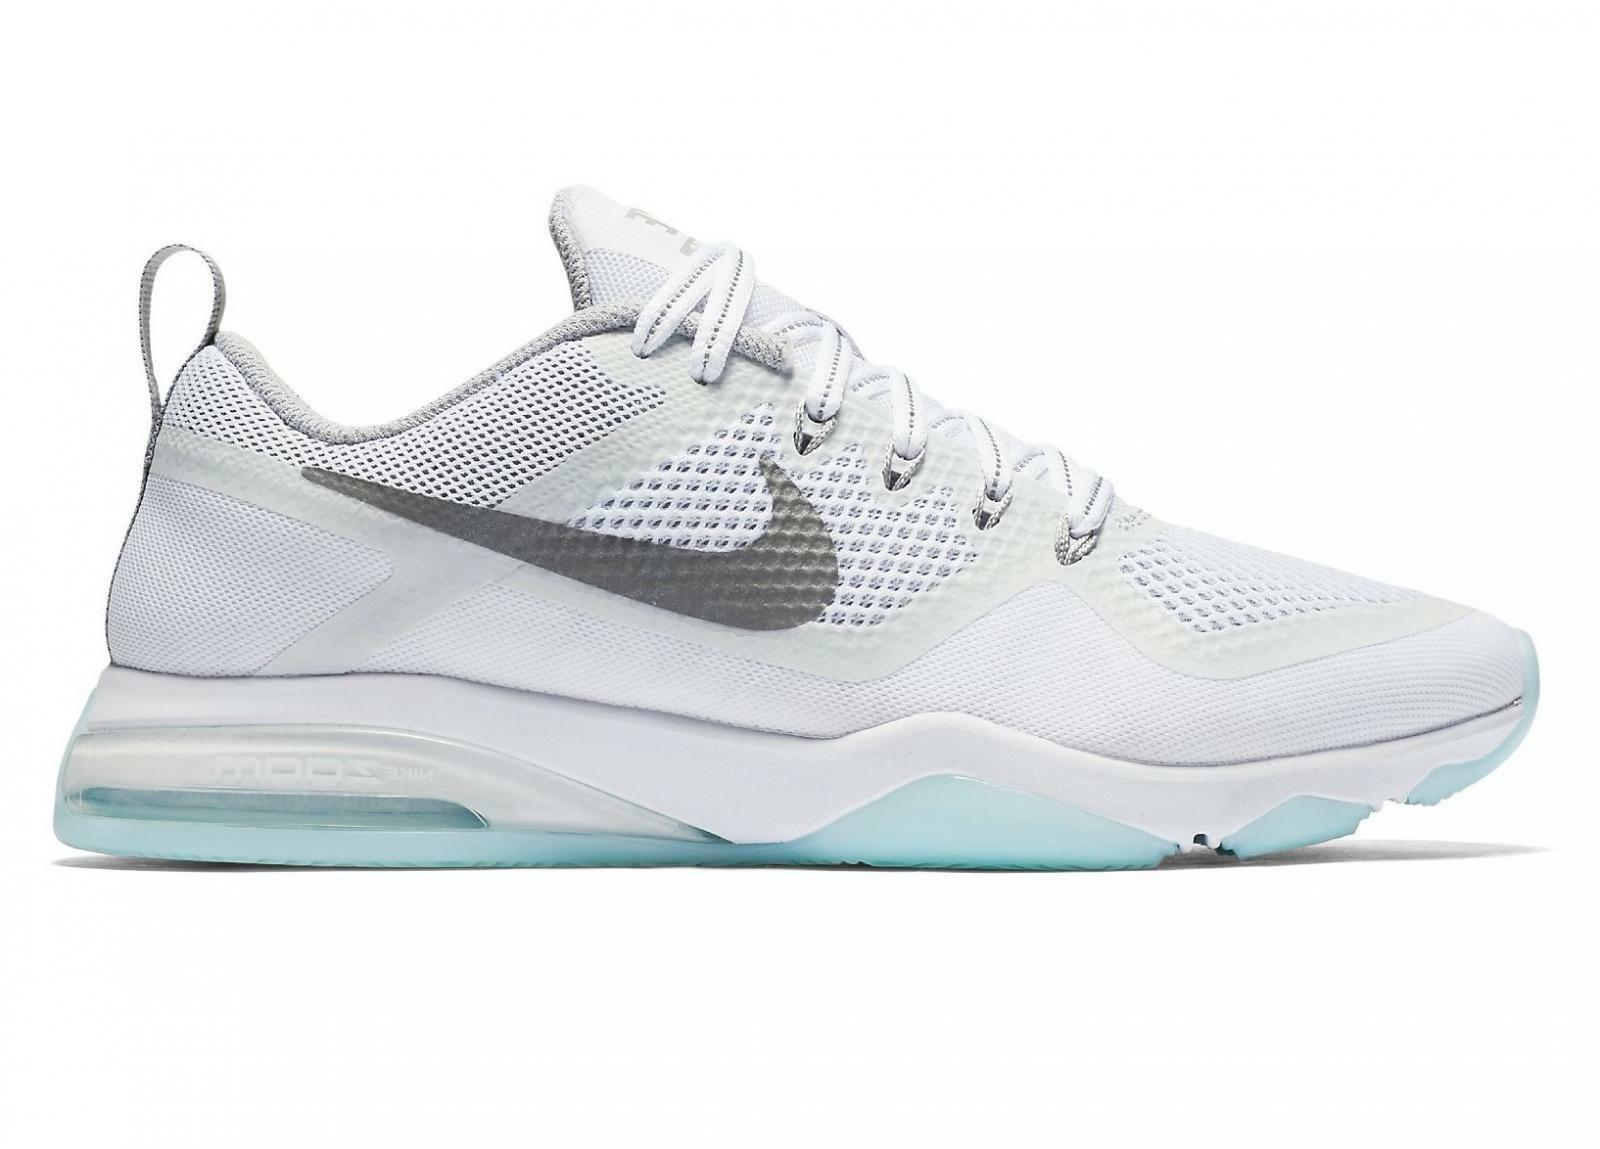 Femme NIKE AIR ZOOM FITNESS REFLECT Blanc Trainers 922878 100